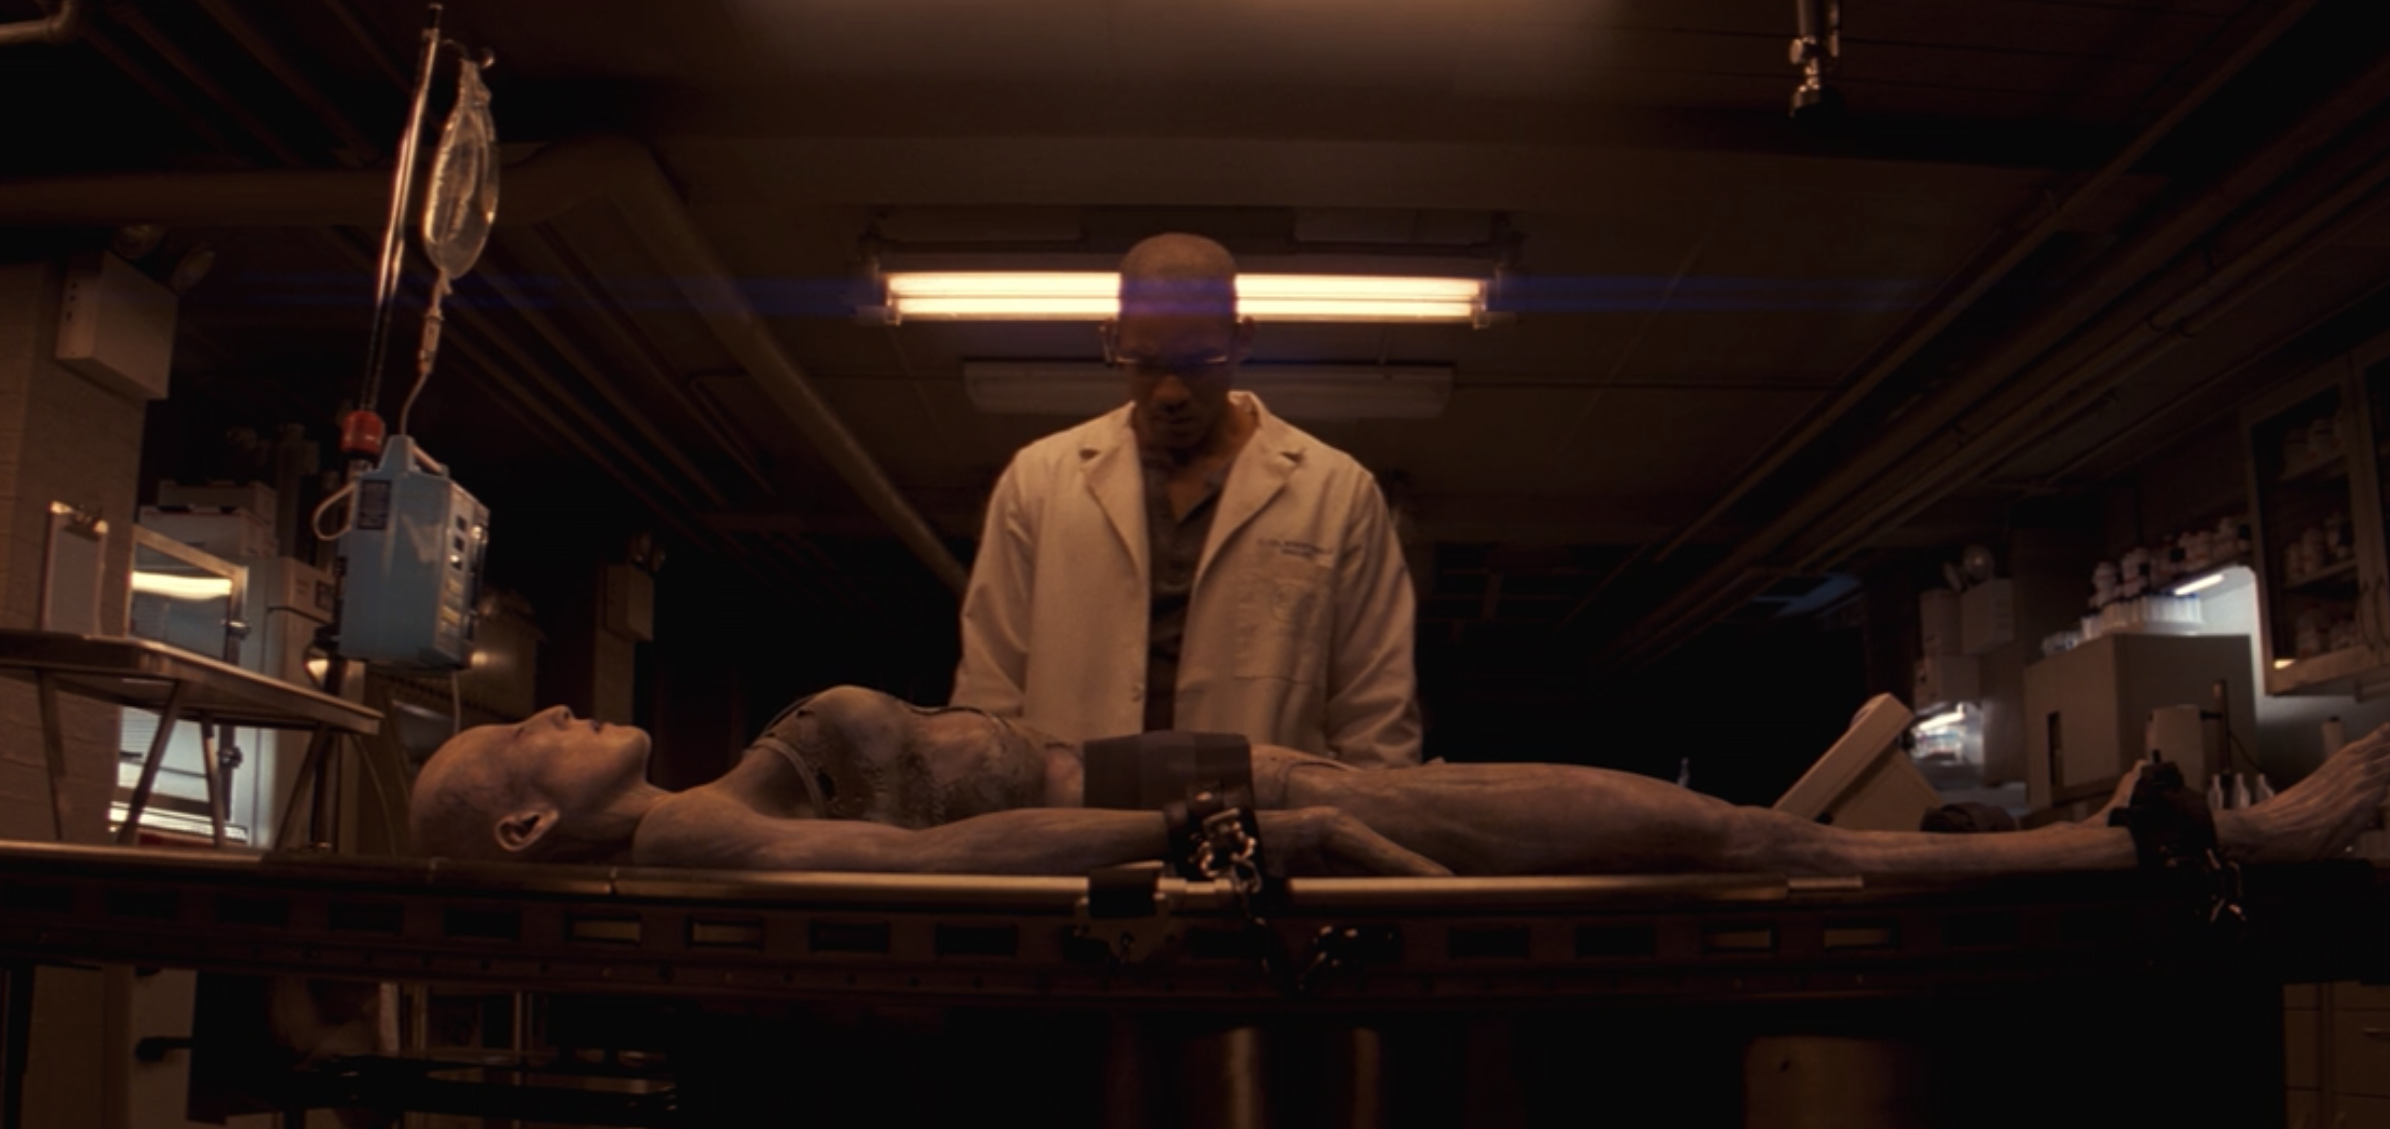 Dr. Neville performs human trials to find a cure for the virus that turned people into mutants